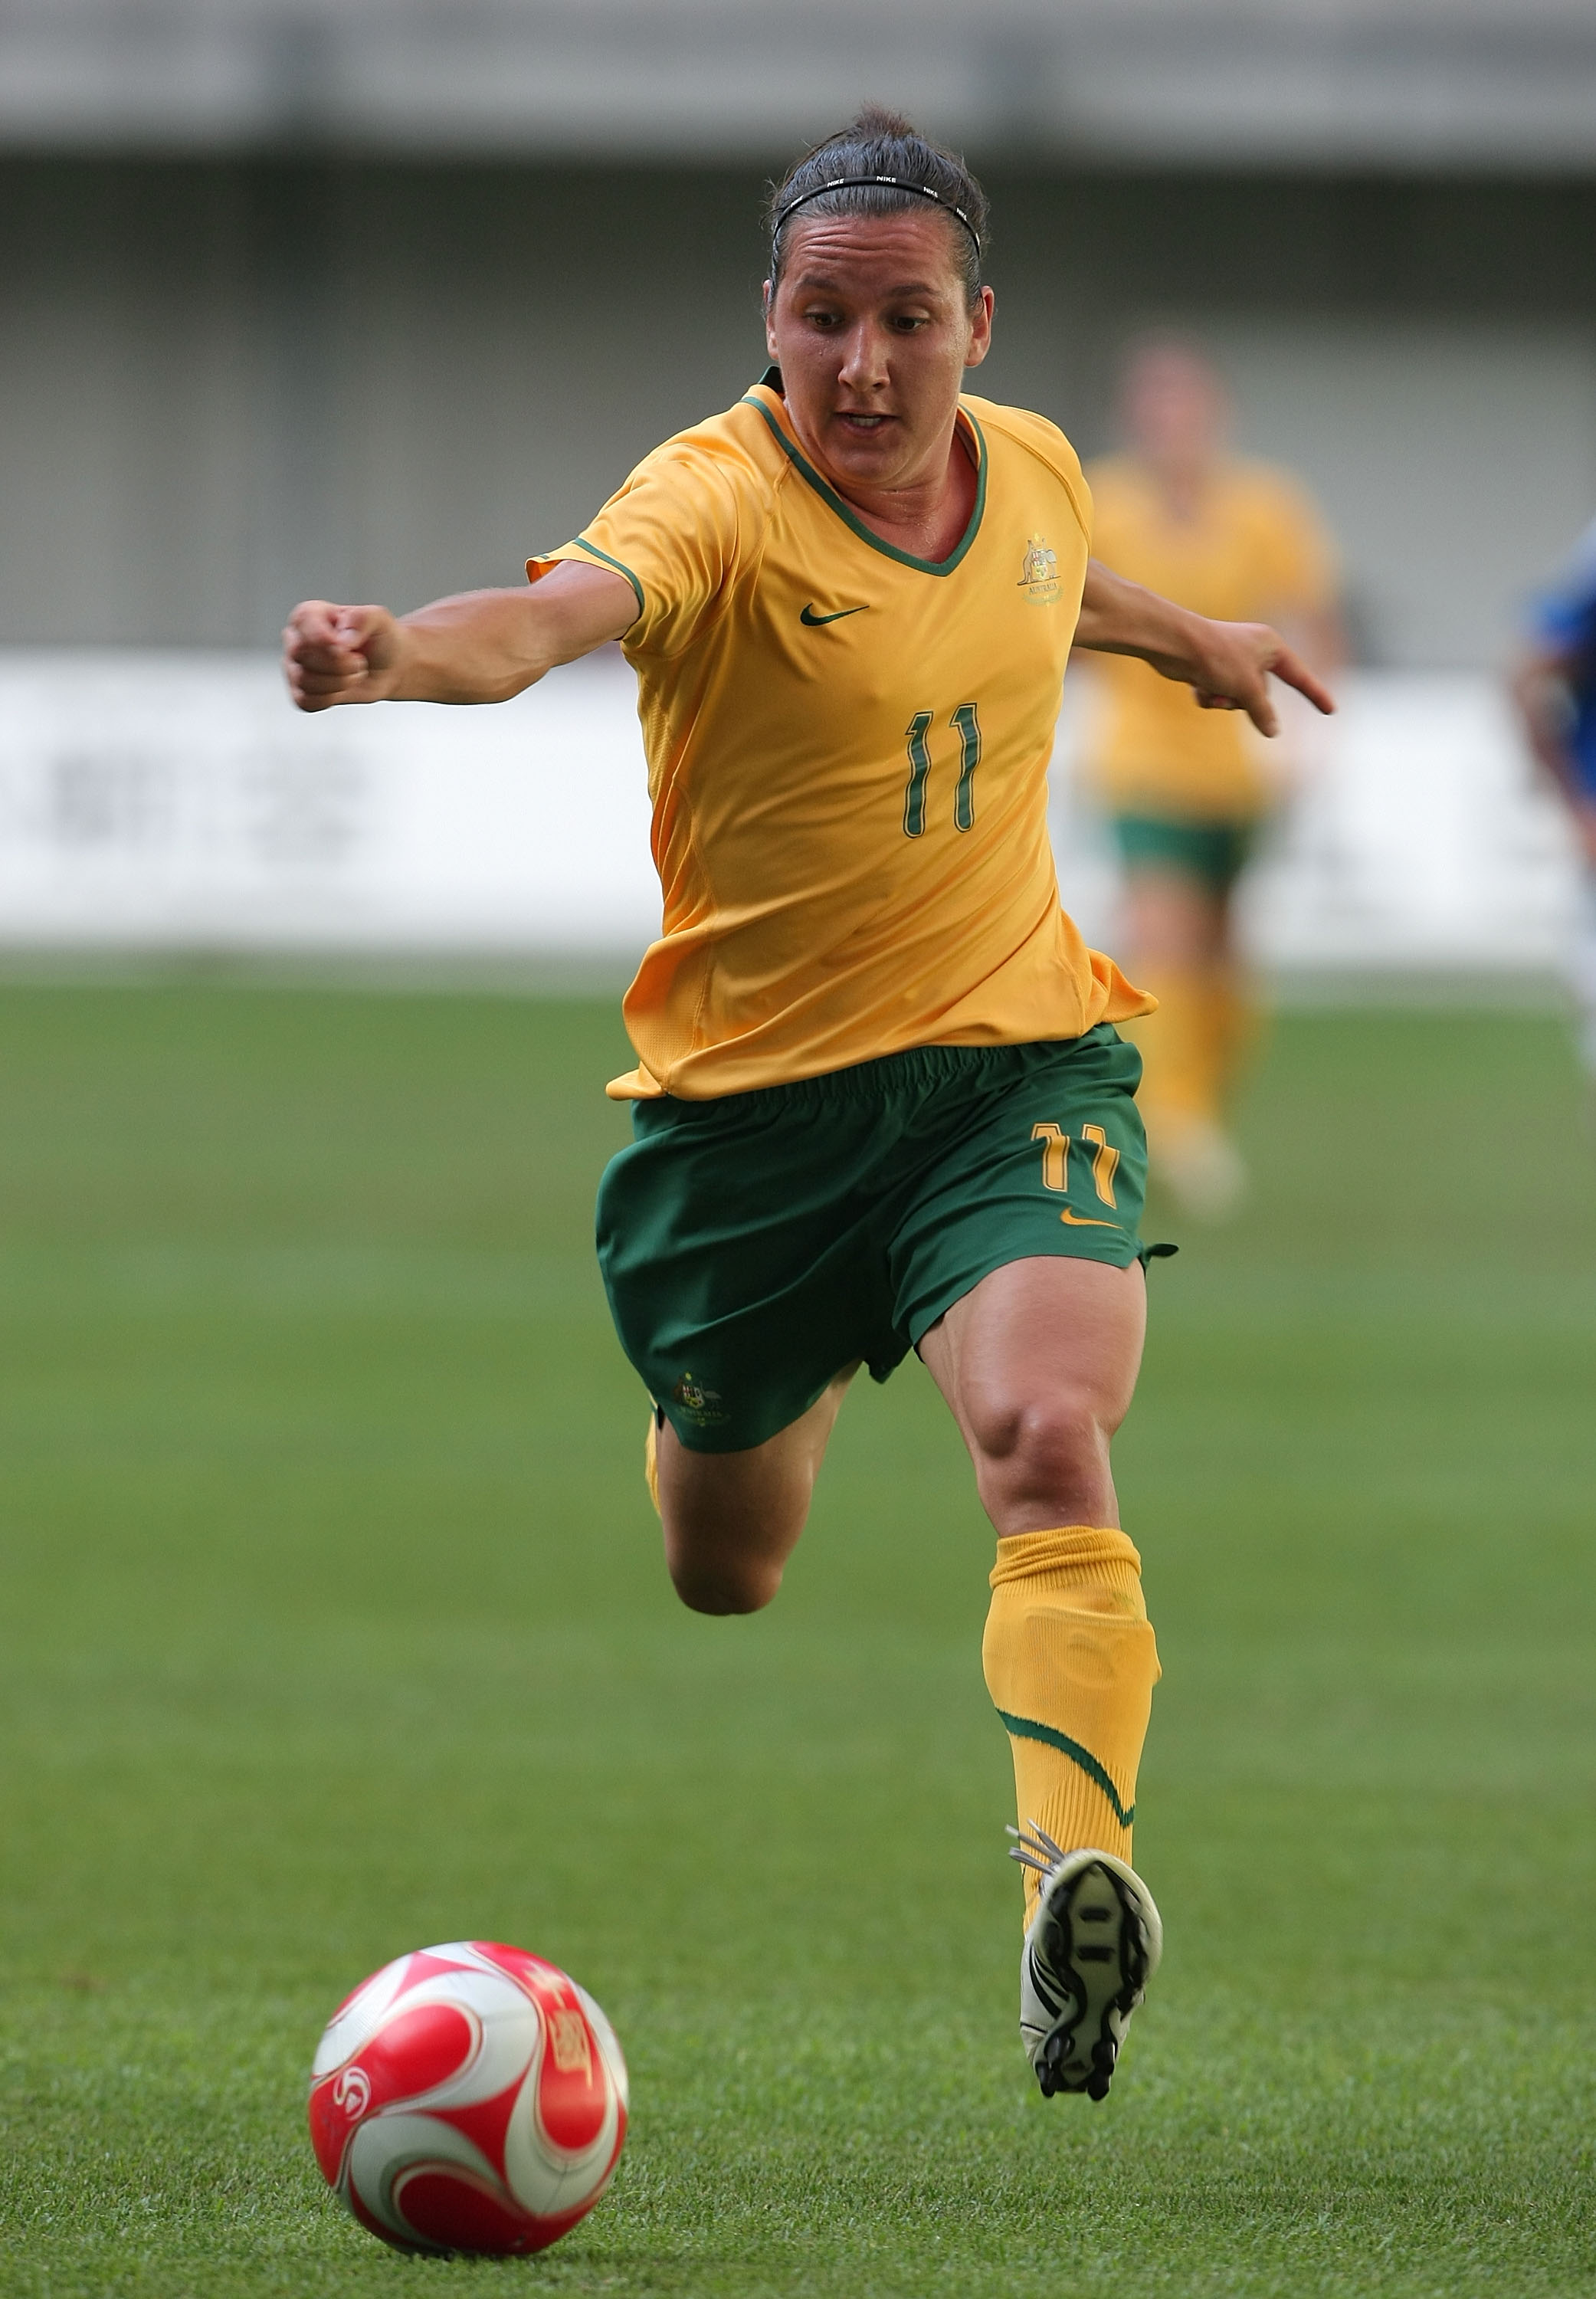 KOBE, JAPAN - JULY 24:  Lisa De Vanna of the Australian Matildas in action during the women's international friendly match between Japan and the Australian Matildas at Home's Stadium Kobe on July 24, 2008 in Kobe, Japan.  (Photo by Koichi Kamoshida/Getty